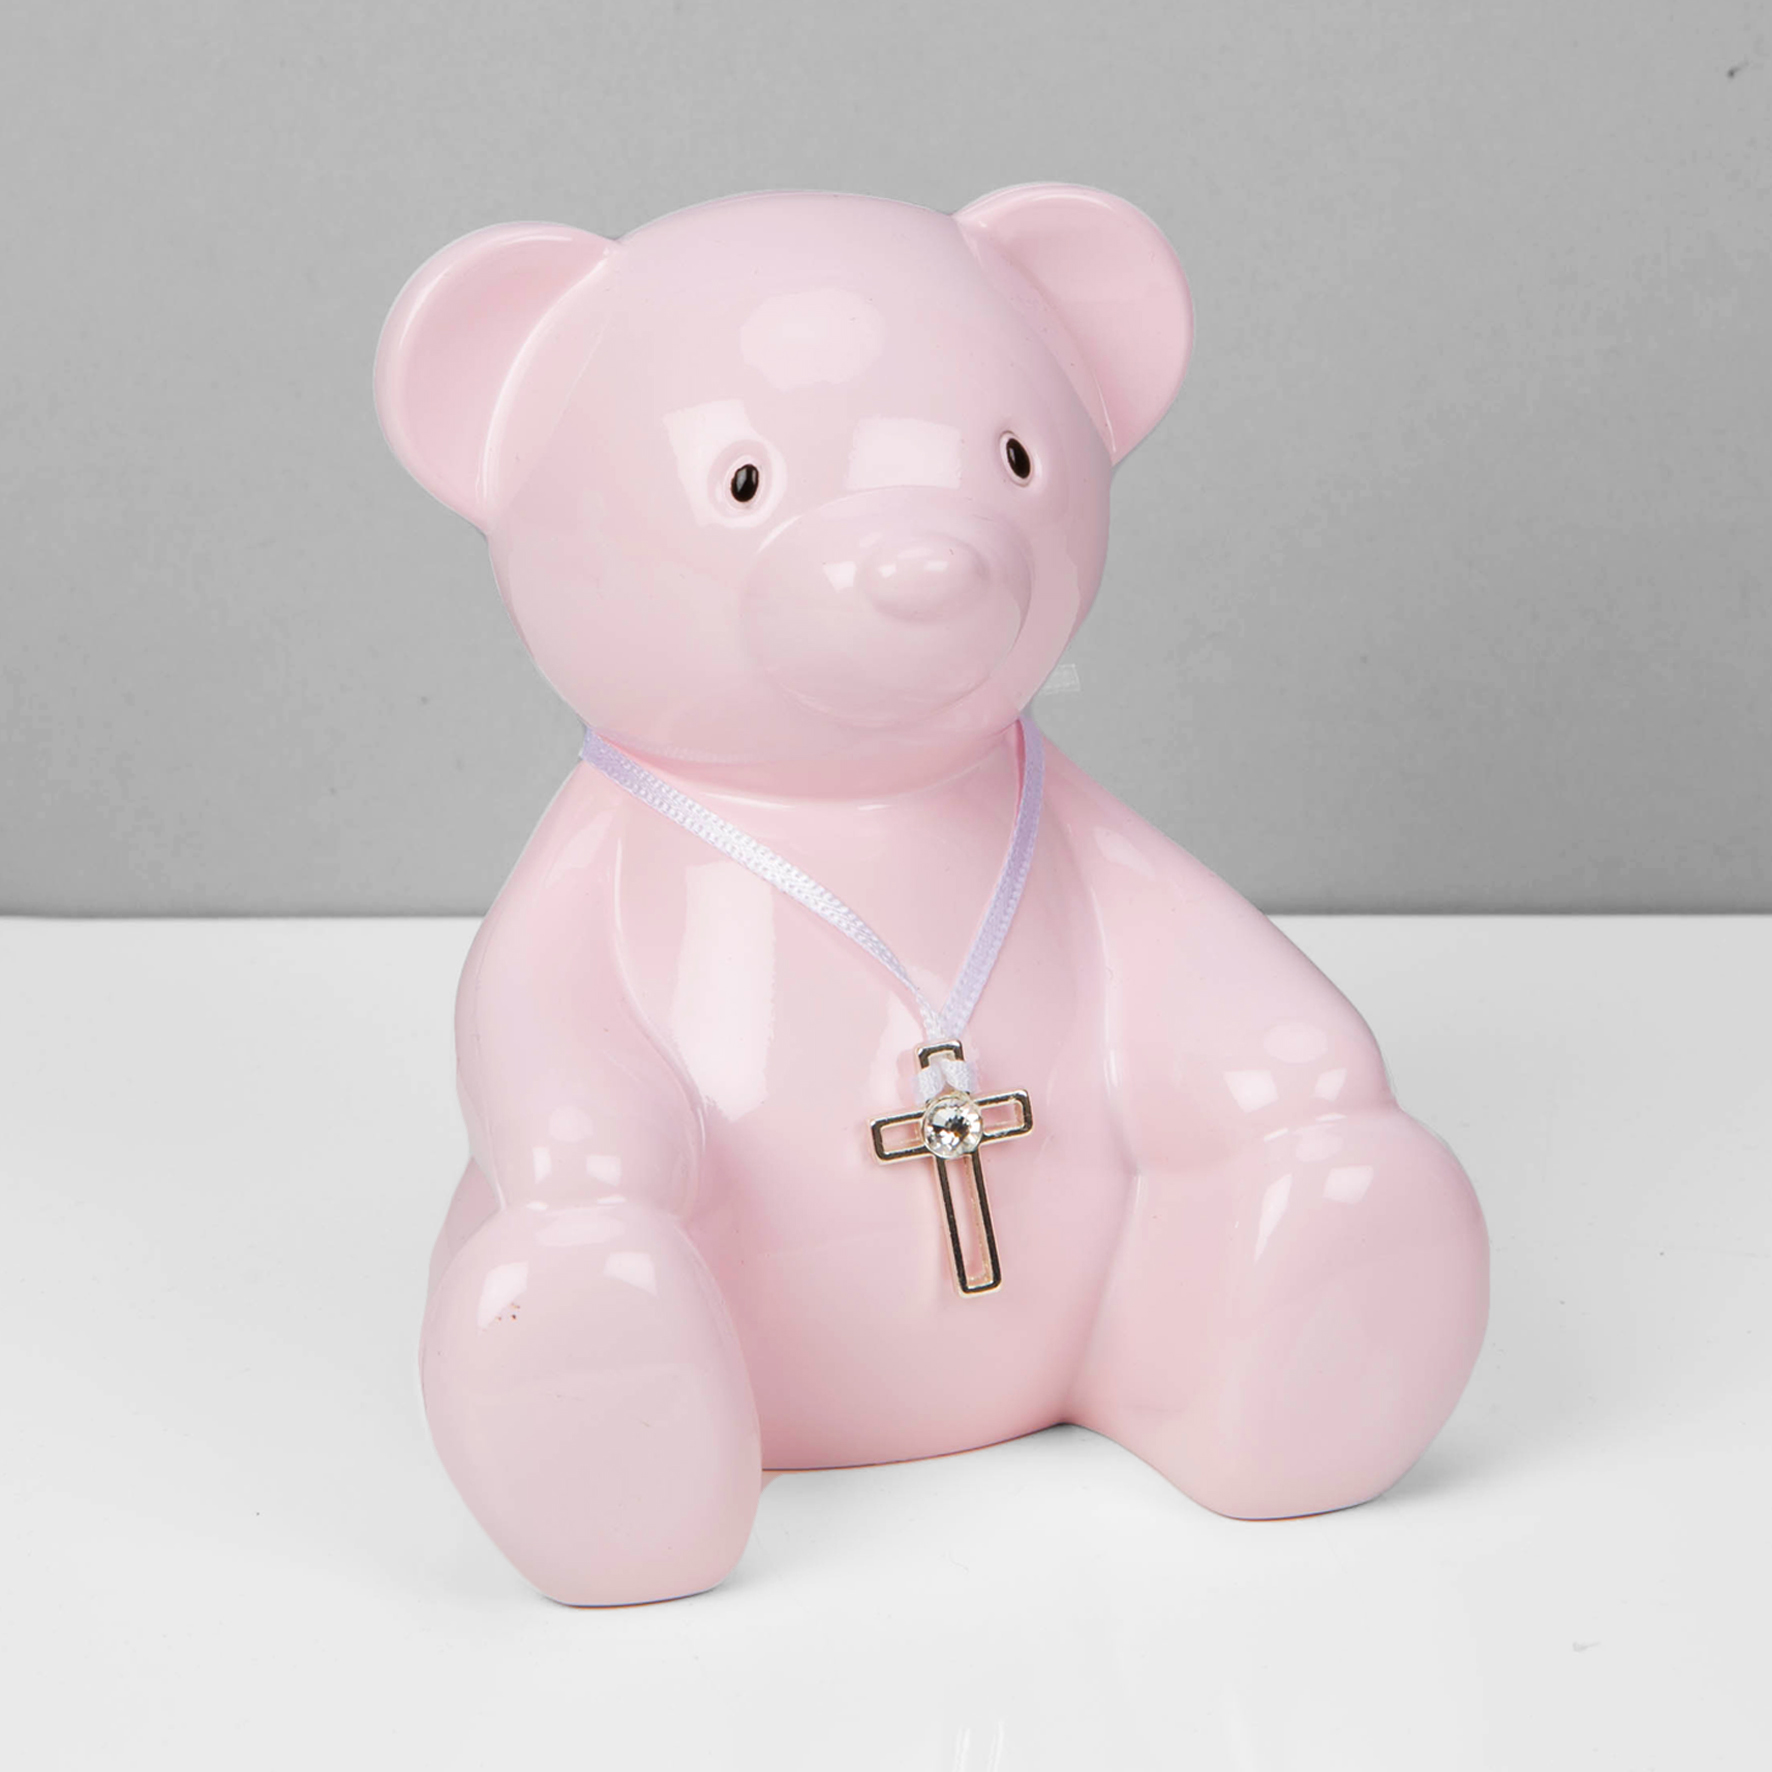 BBs -b- Bambino Pink Metal Teddy Bear Money Box CG1656P